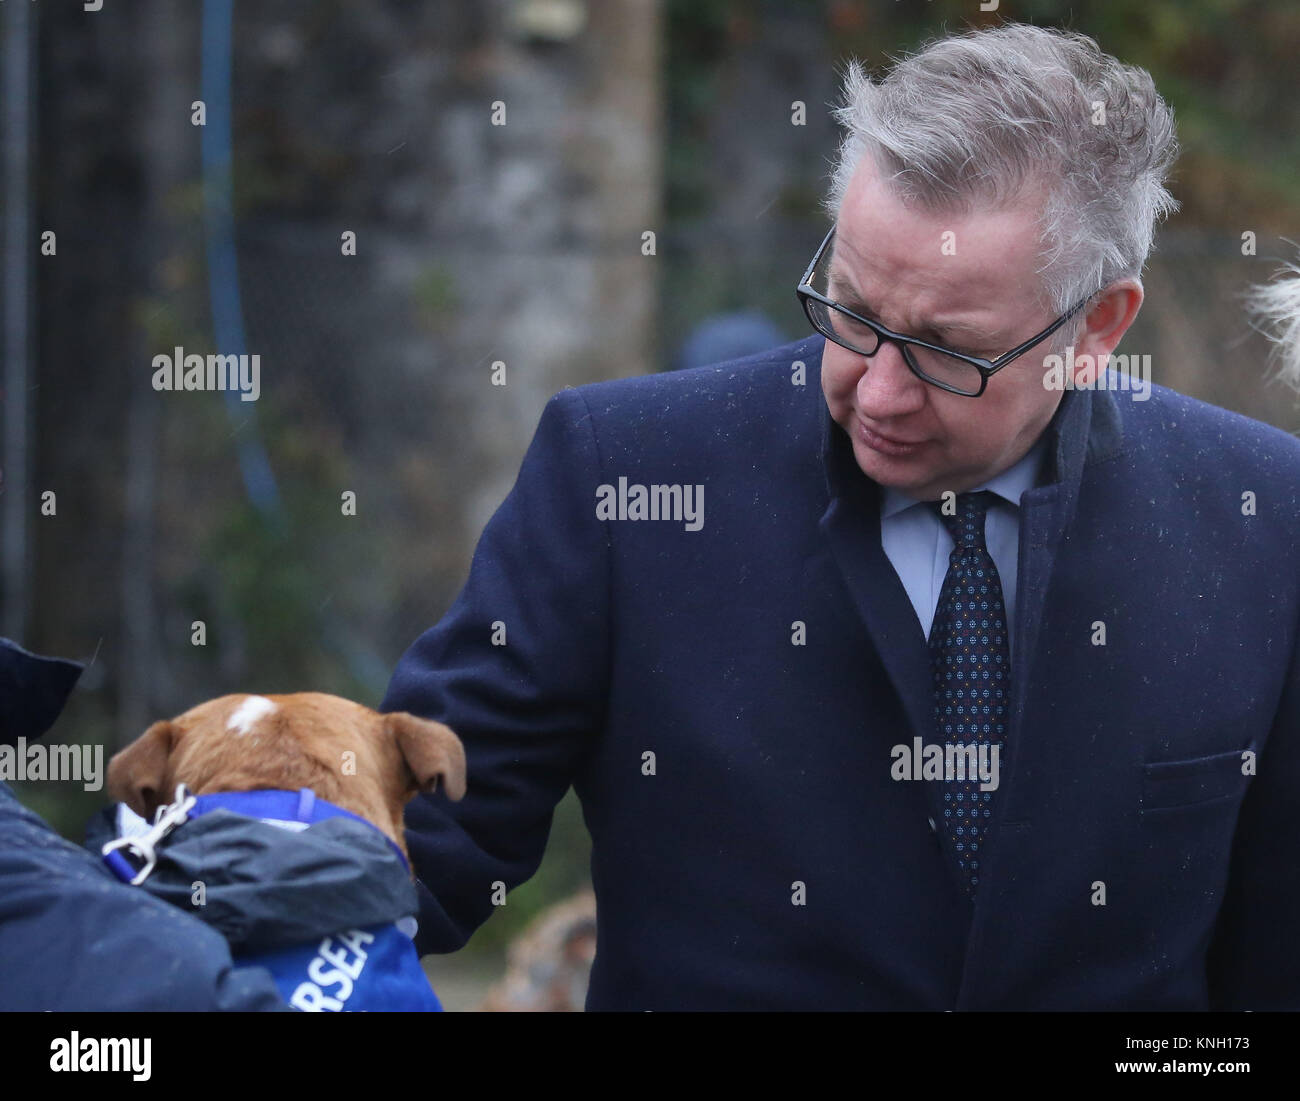 Embargoed to 0001 Tuesday December 12 Secretary of State for Environment, Michael Gove, meets Enid, an 18 month - Stock Image